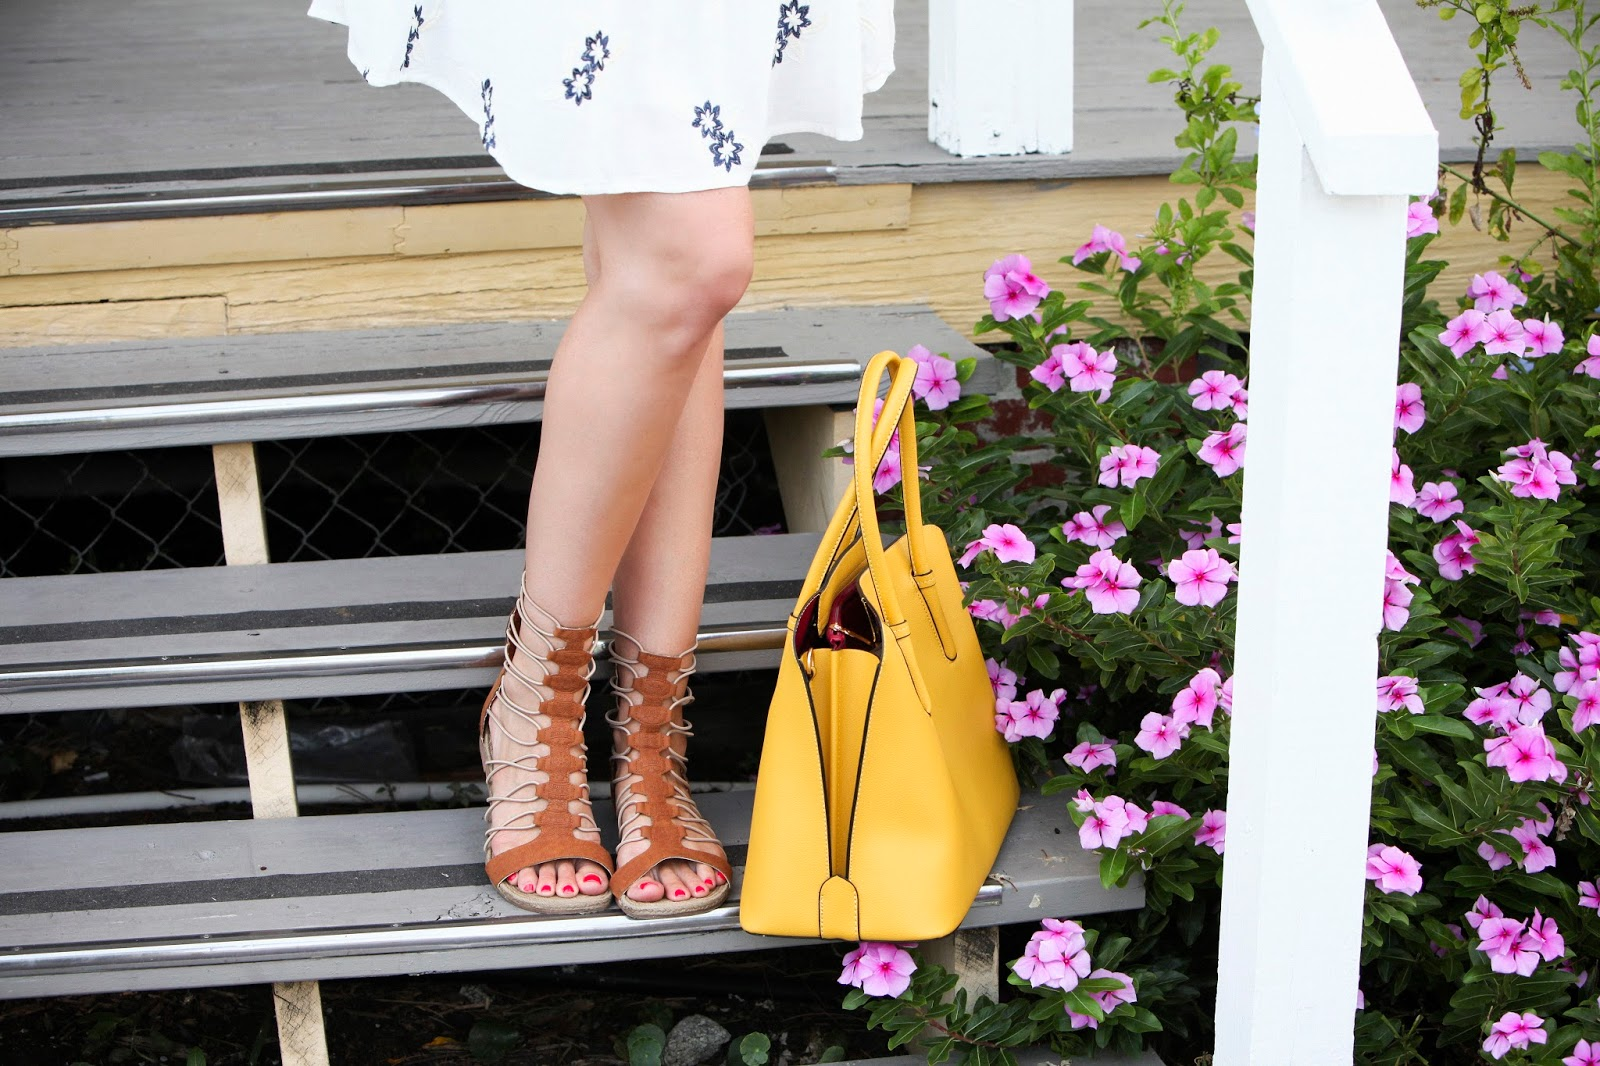 gladiator sandals and yellow handbag